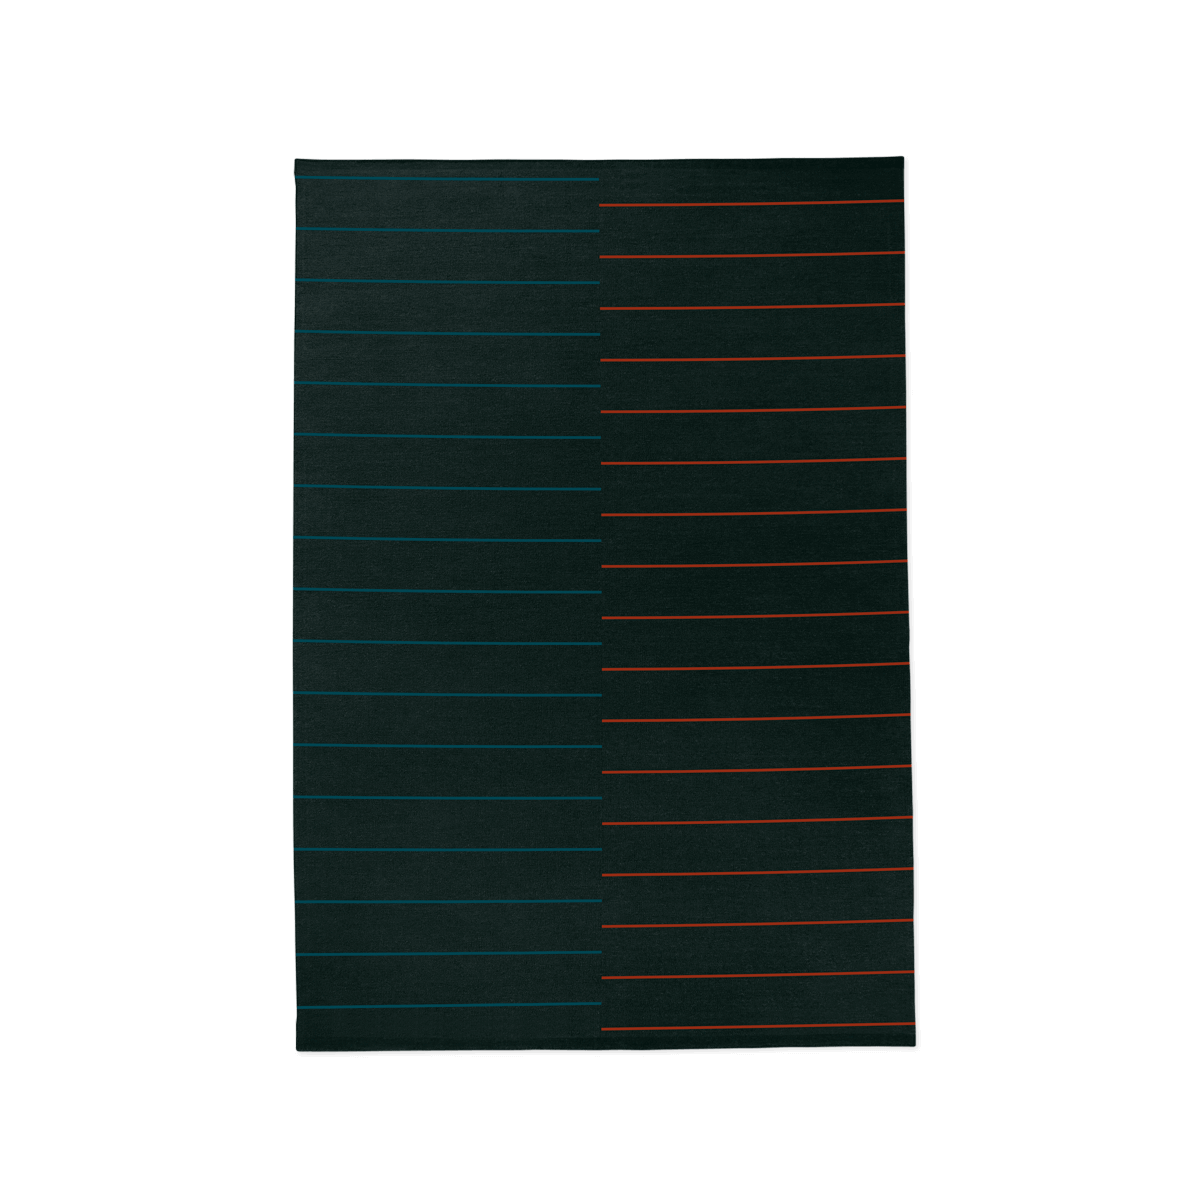 Product image of the flatweave rug Barber in the color Black. The rug has a striped pattern where the right side is red stripes and the left is blue.